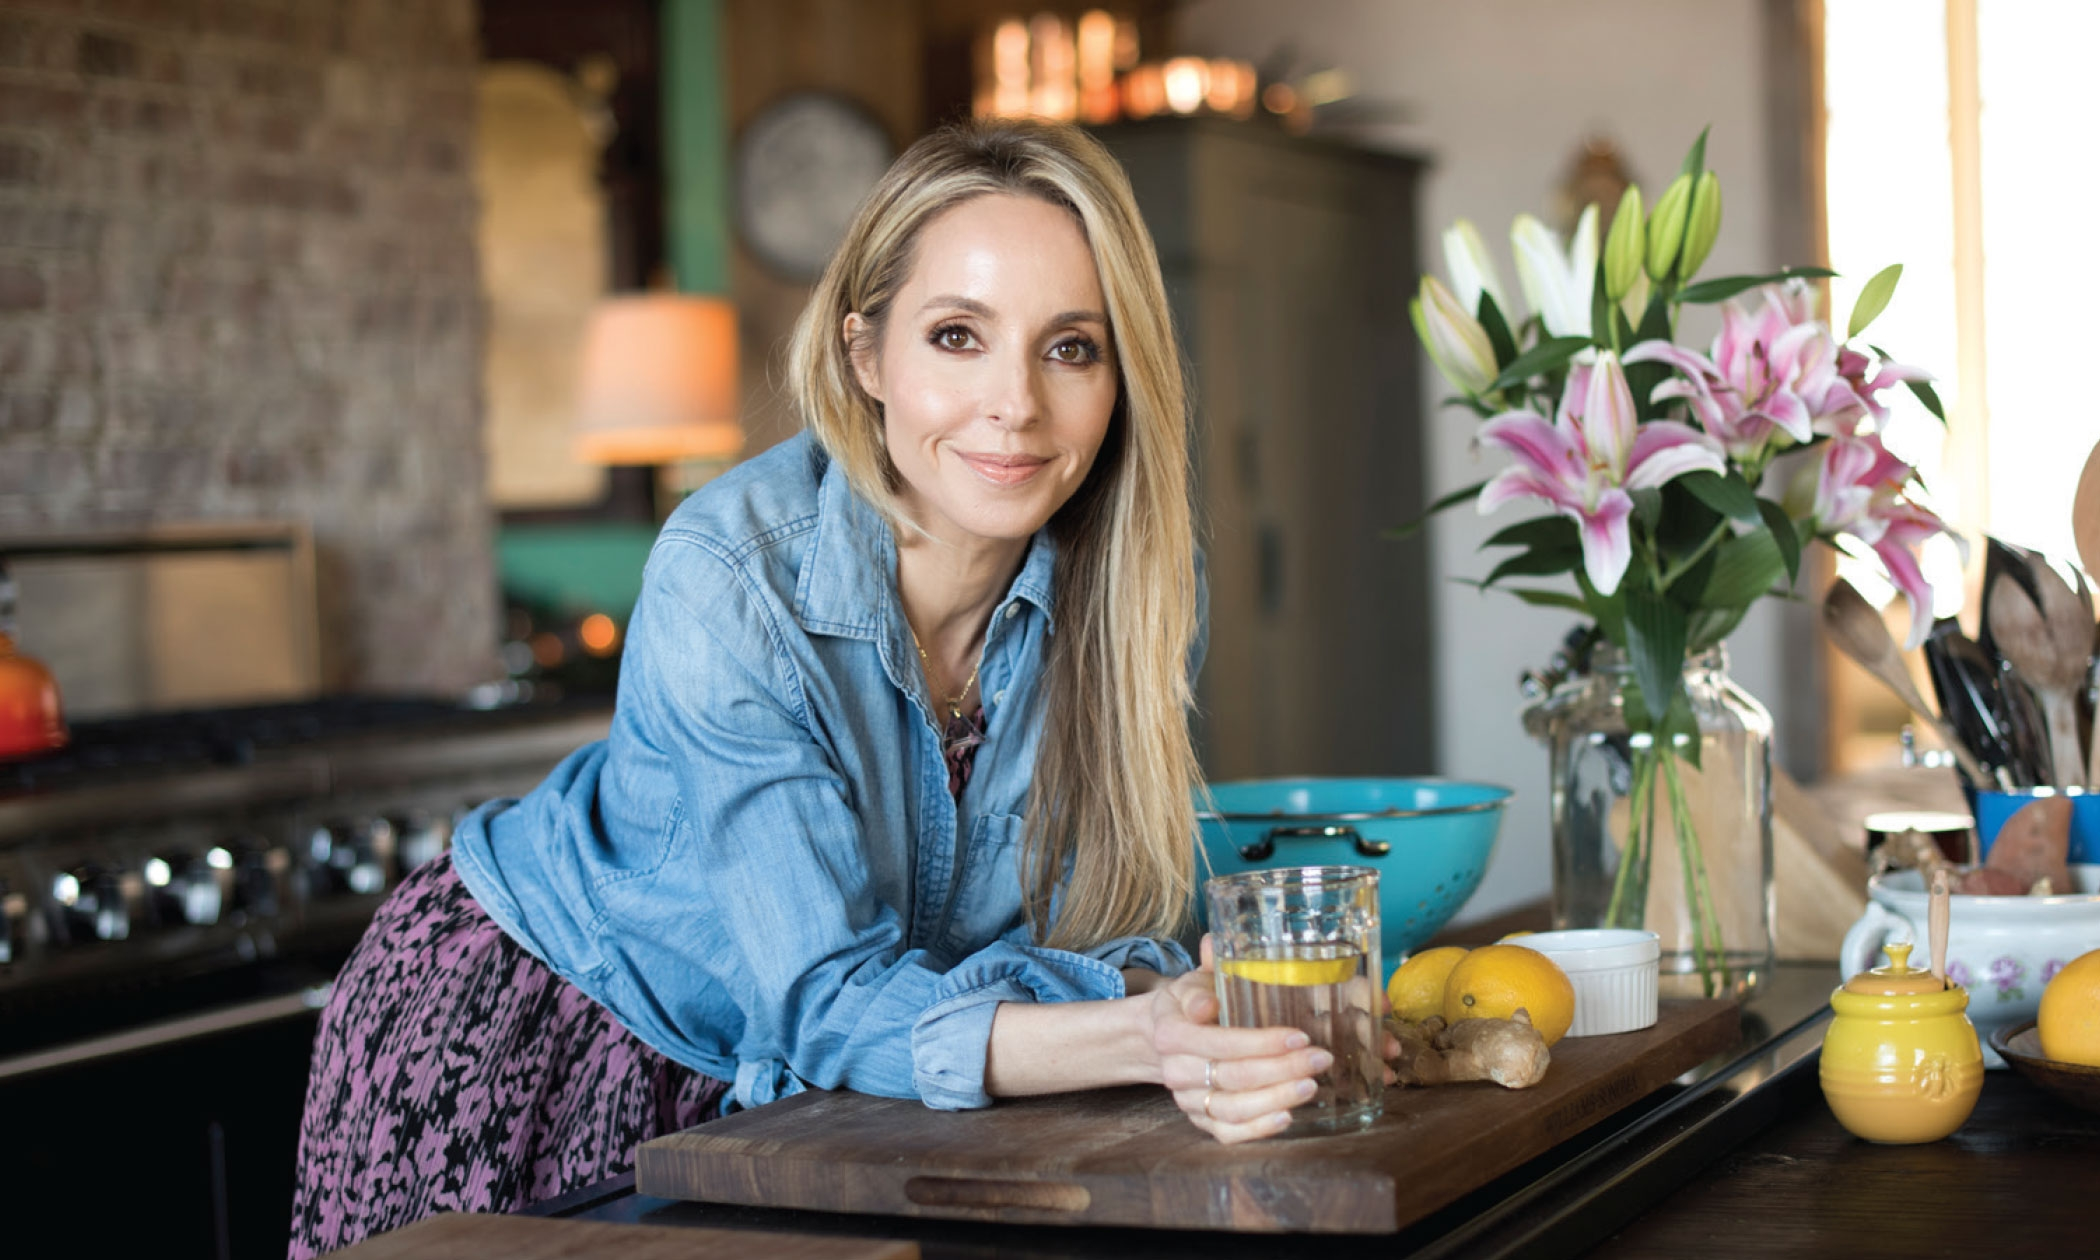 Gut Health: Gabby Bernstein's Experience with SIBO, GERD and More